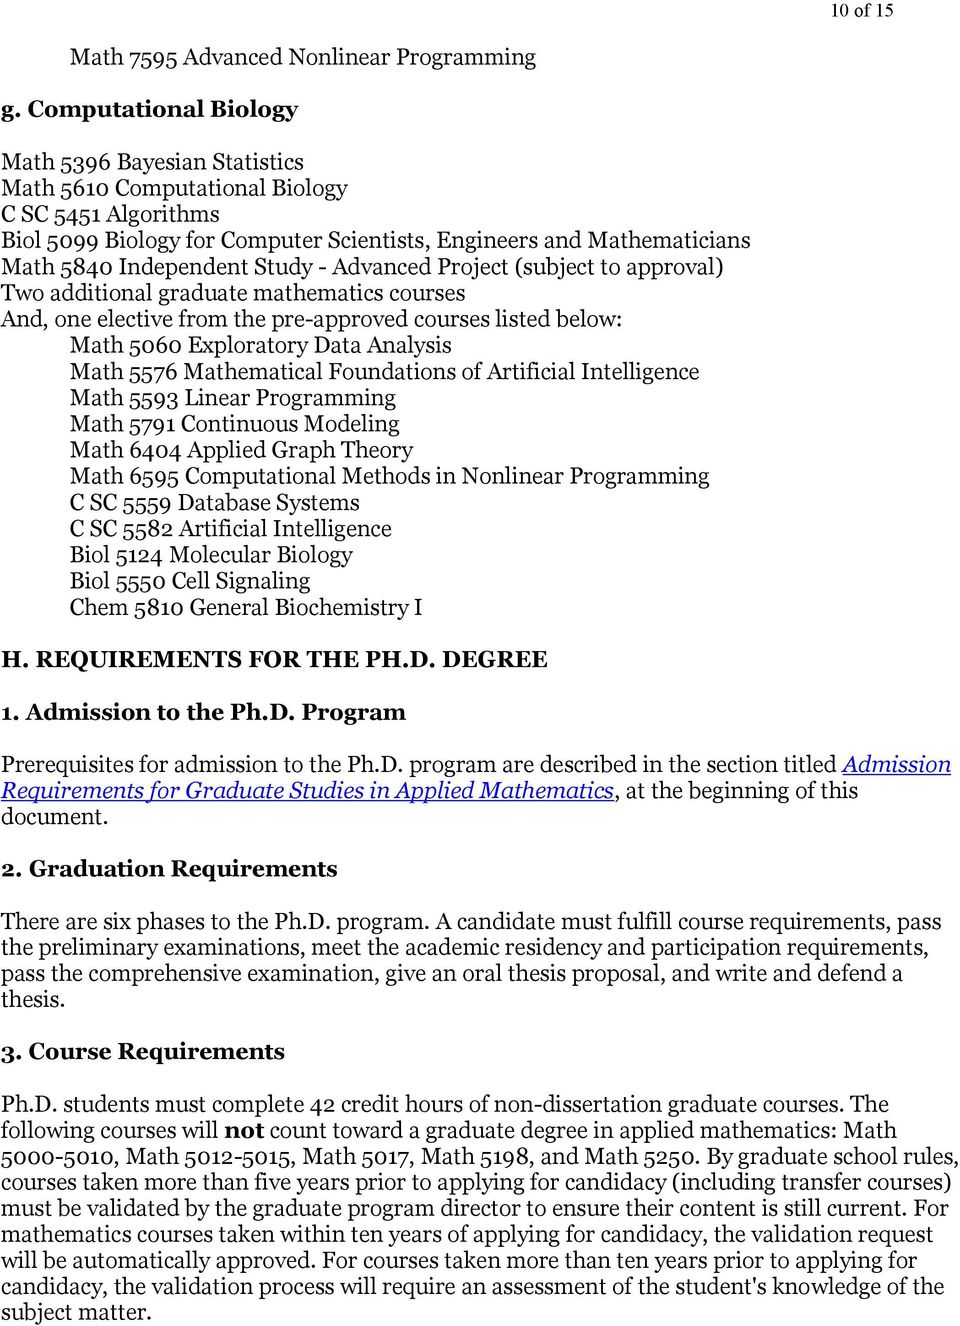 Study - Advanced Project (subject to approval) Two additional graduate mathematics courses And, one elective from the pre-approved courses listed below: Math 5060 Exploratory Data Analysis Math 5576